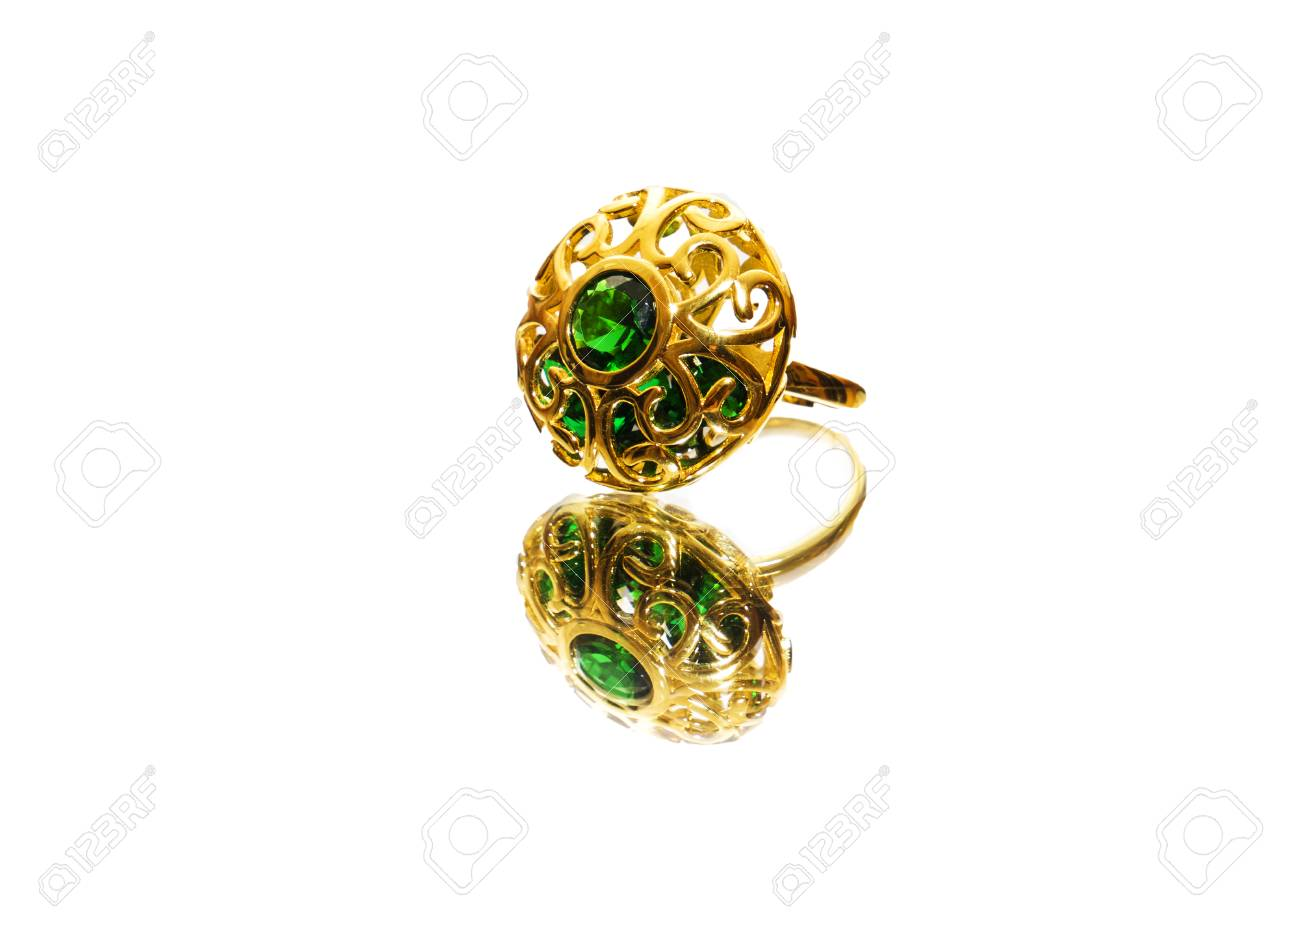 Beautiful Antique Oriental Turkish Gold Jewelry Women Ring Stock